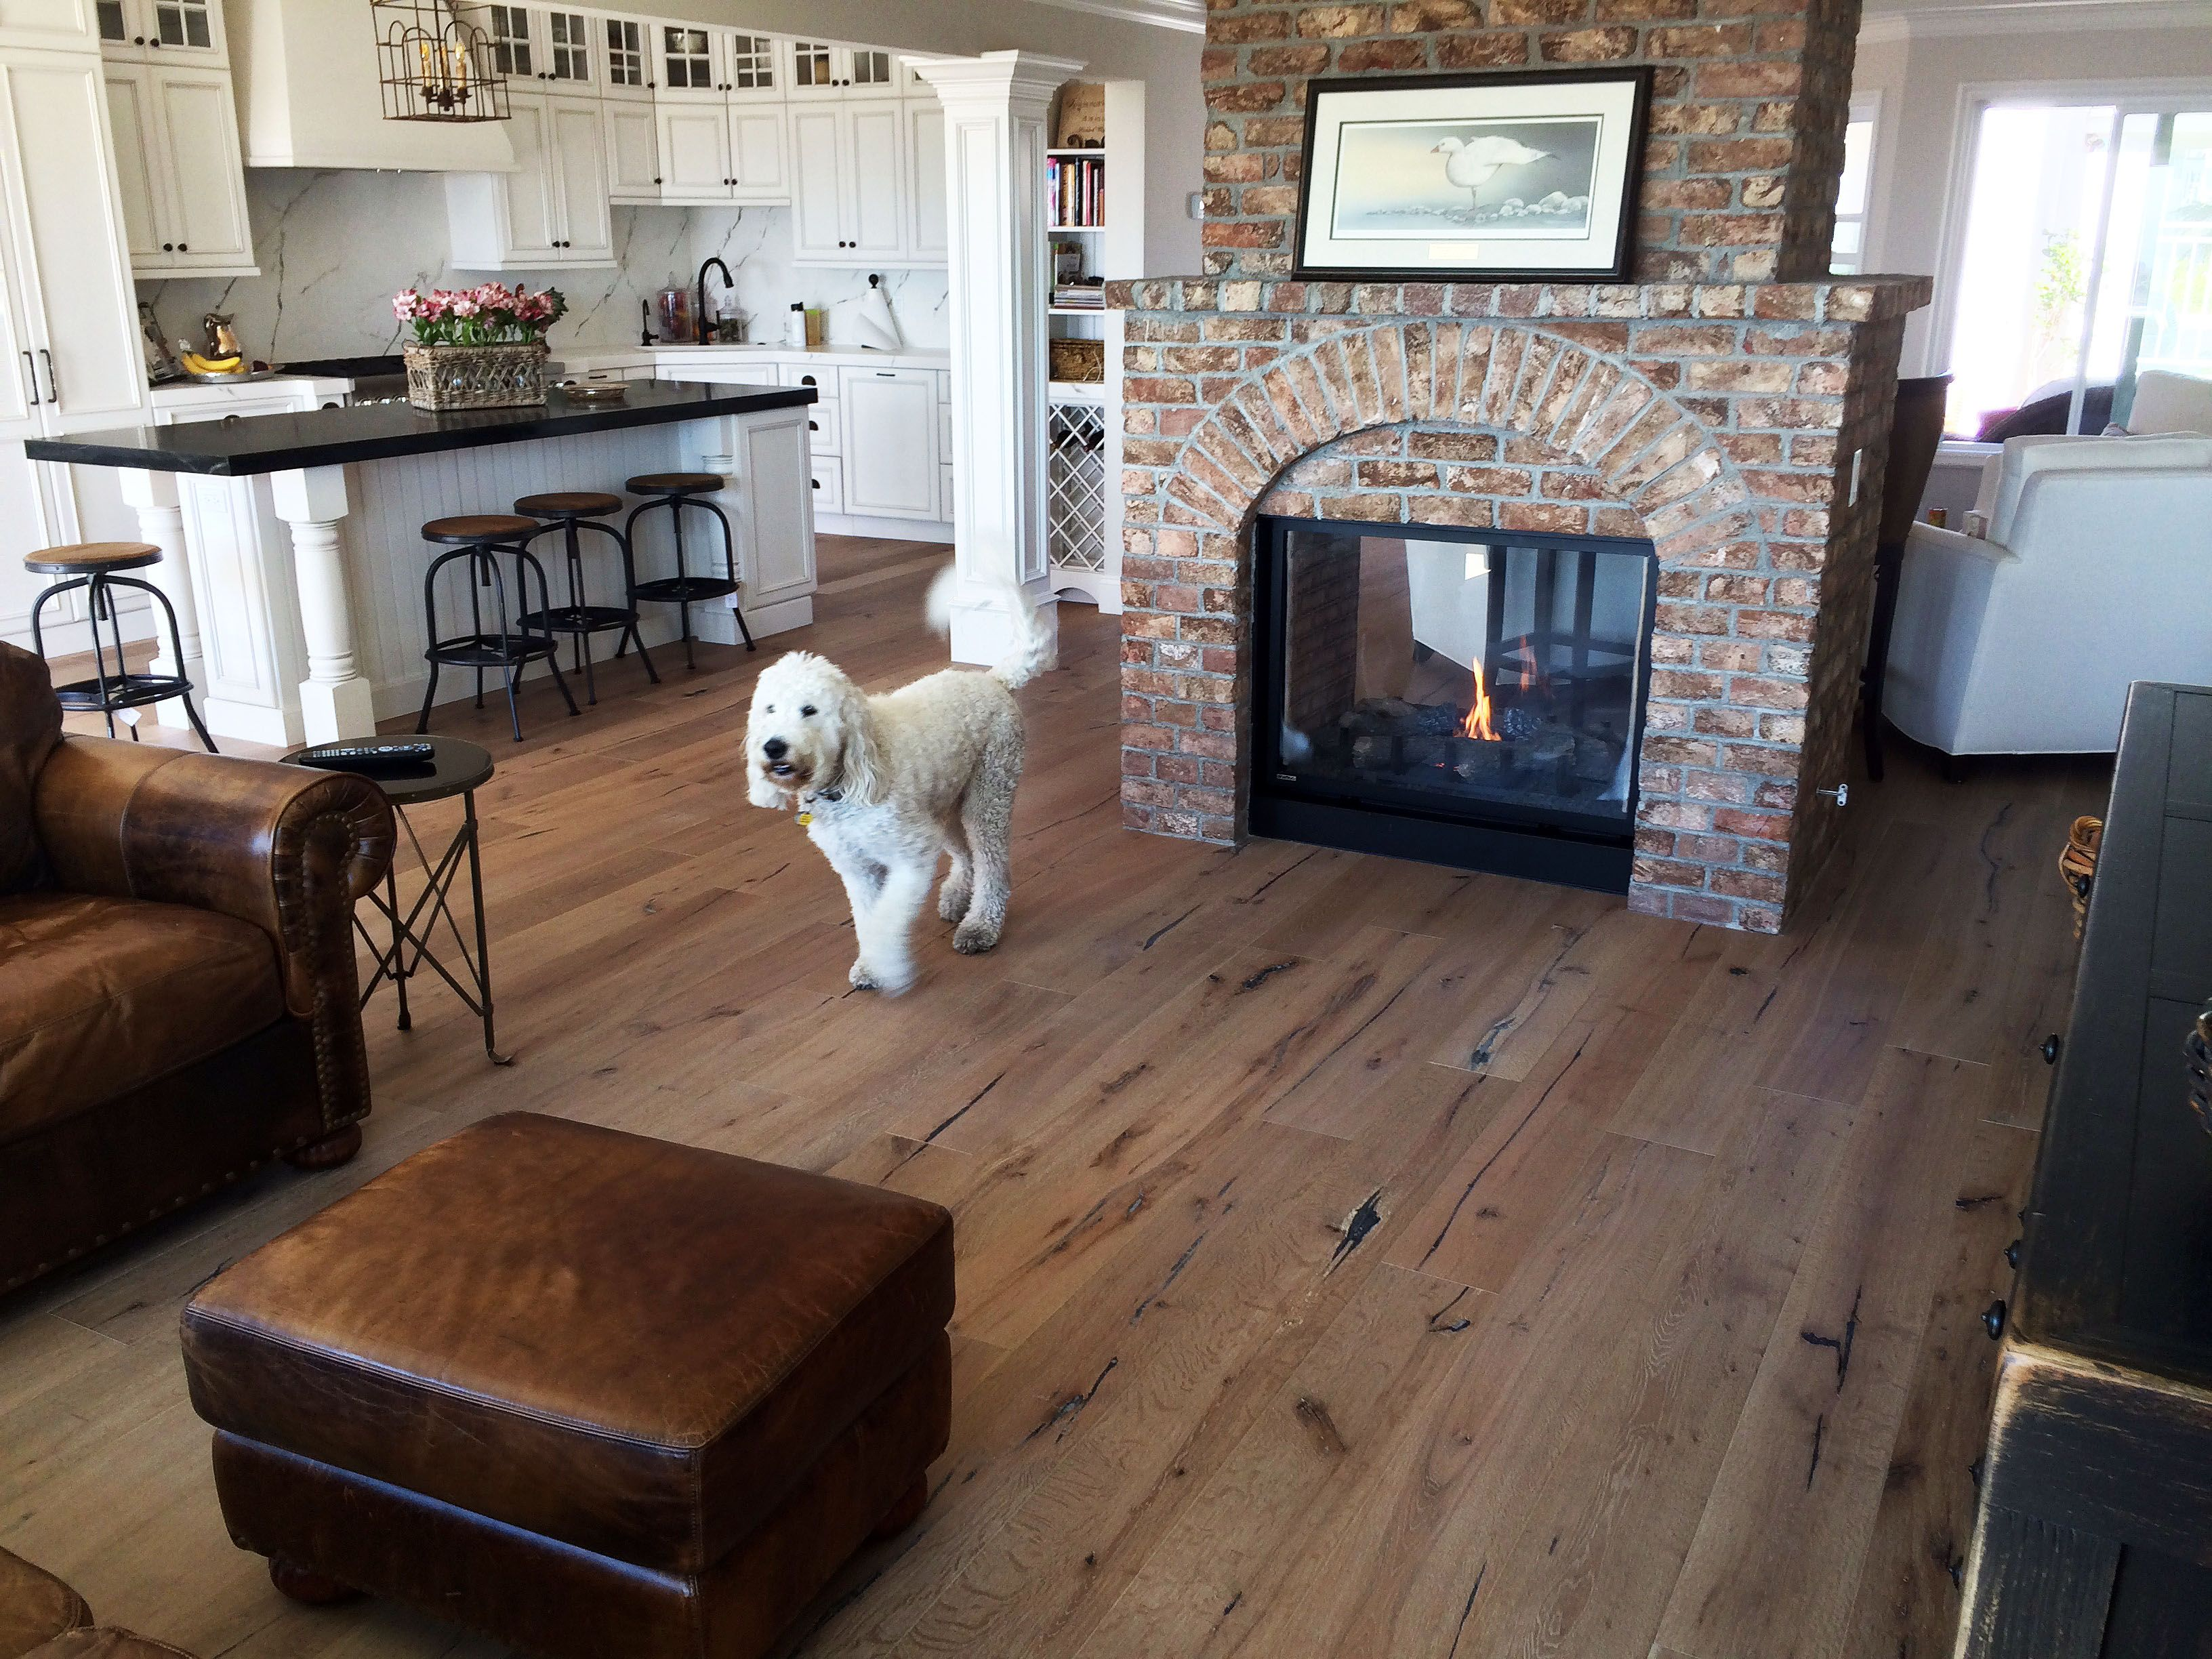 Dogs and hardwood floors are a perfect match! Just make